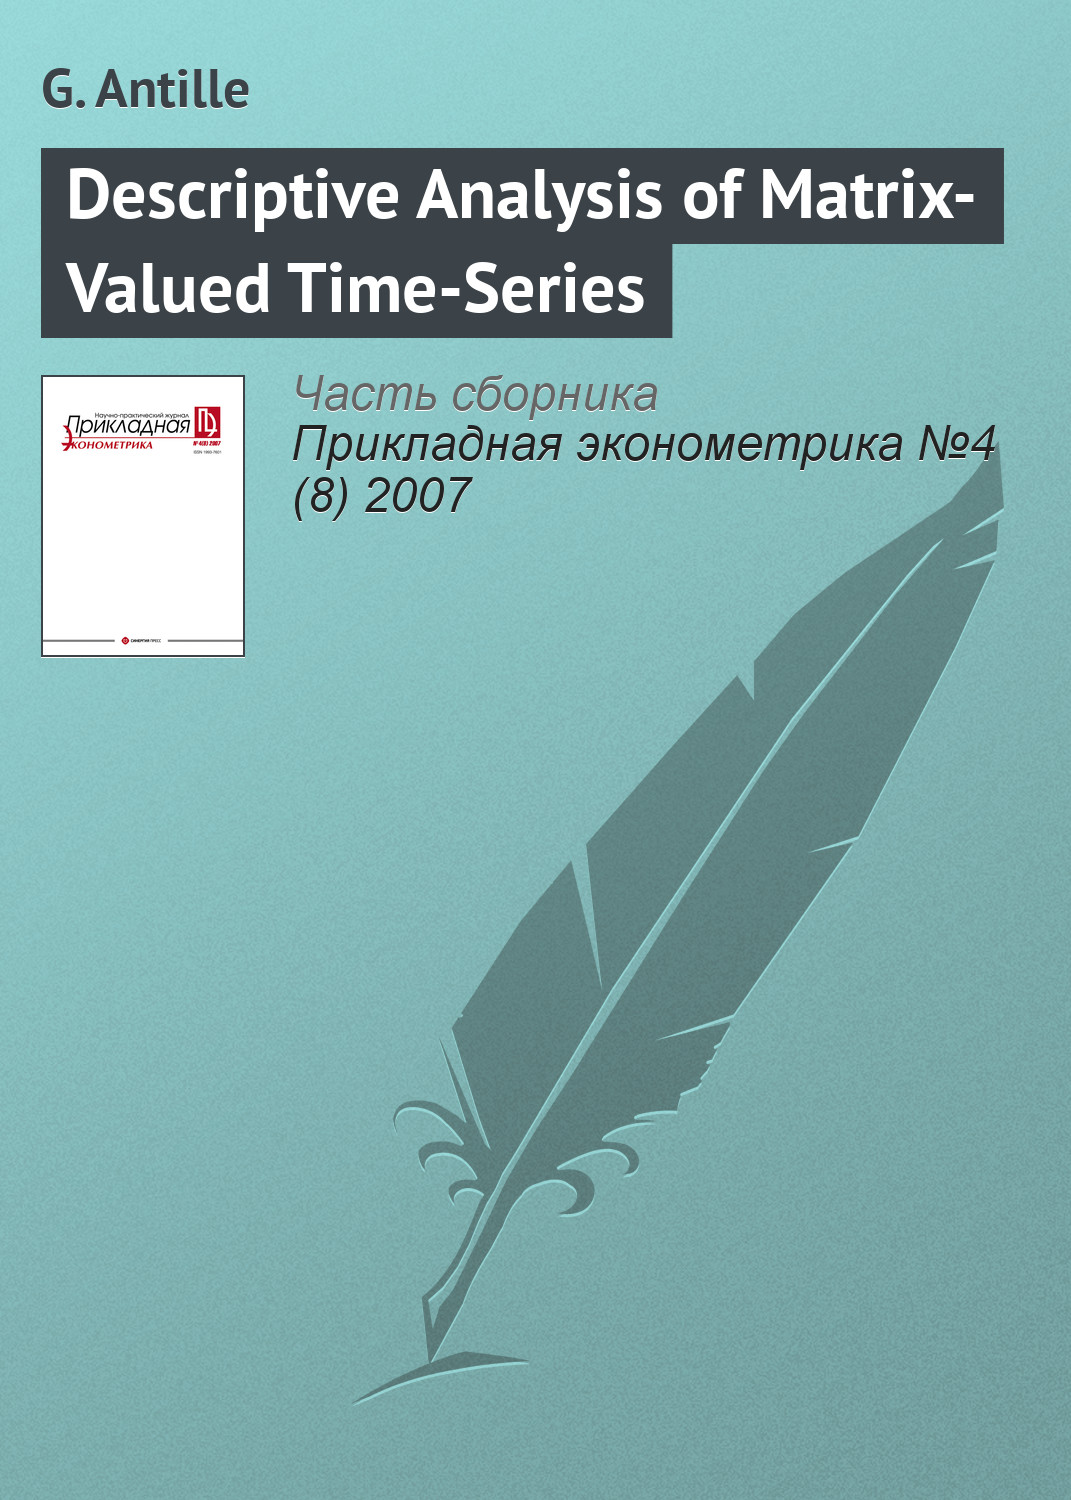 G. Antille Descriptive Analysis of Matrix-Valued Time-Series a hero of our time